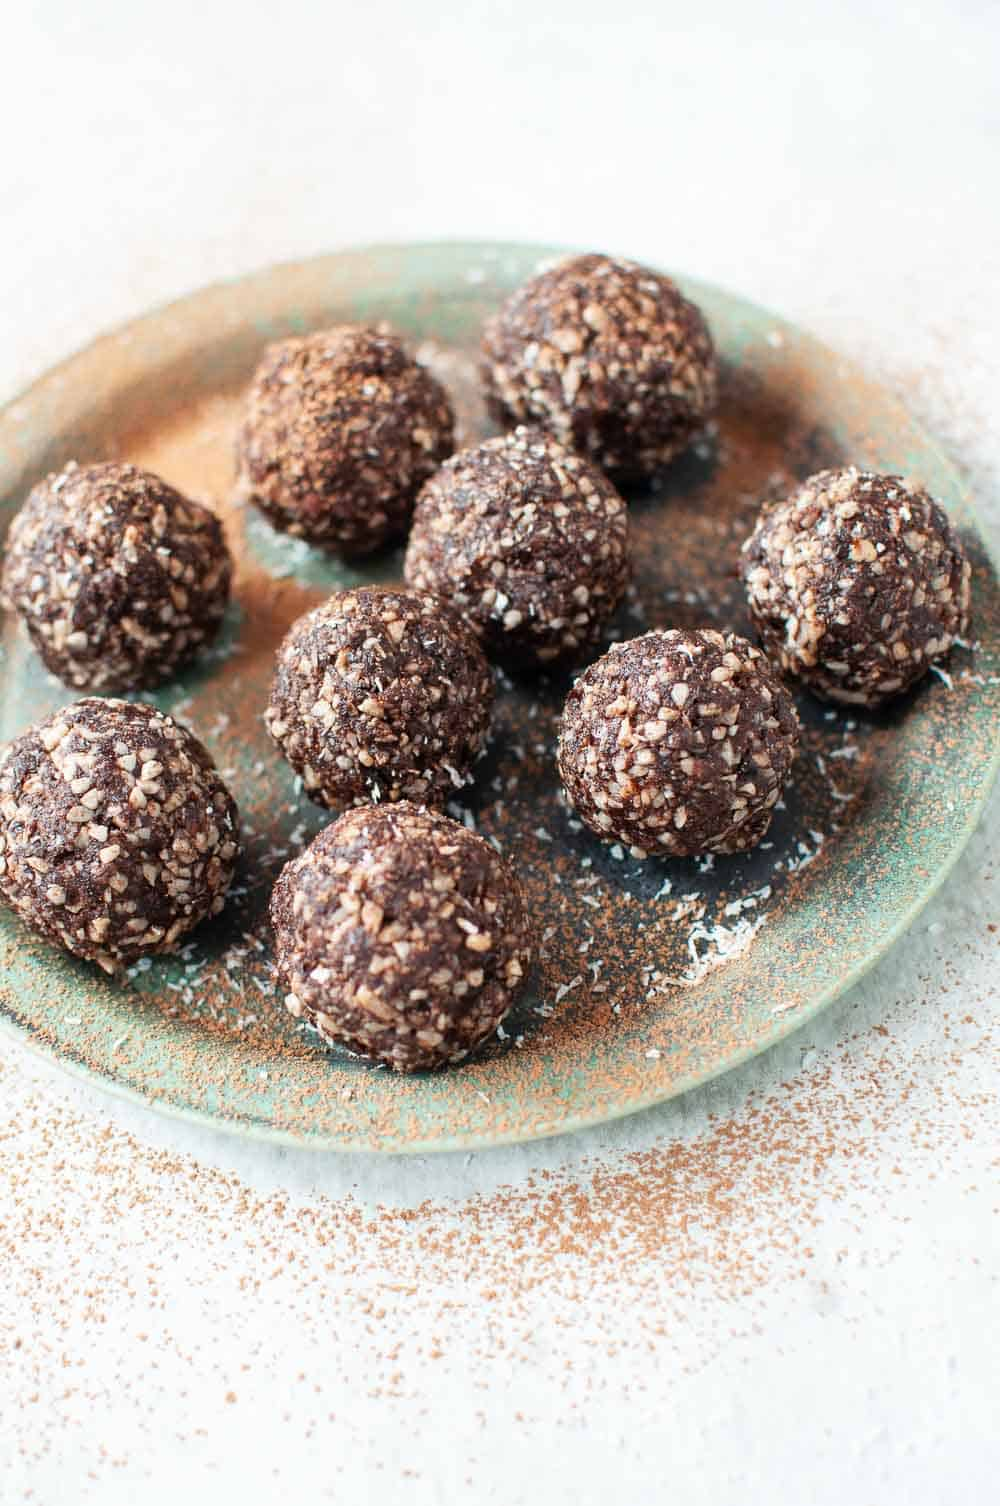 Nut free bliss balls on a plate